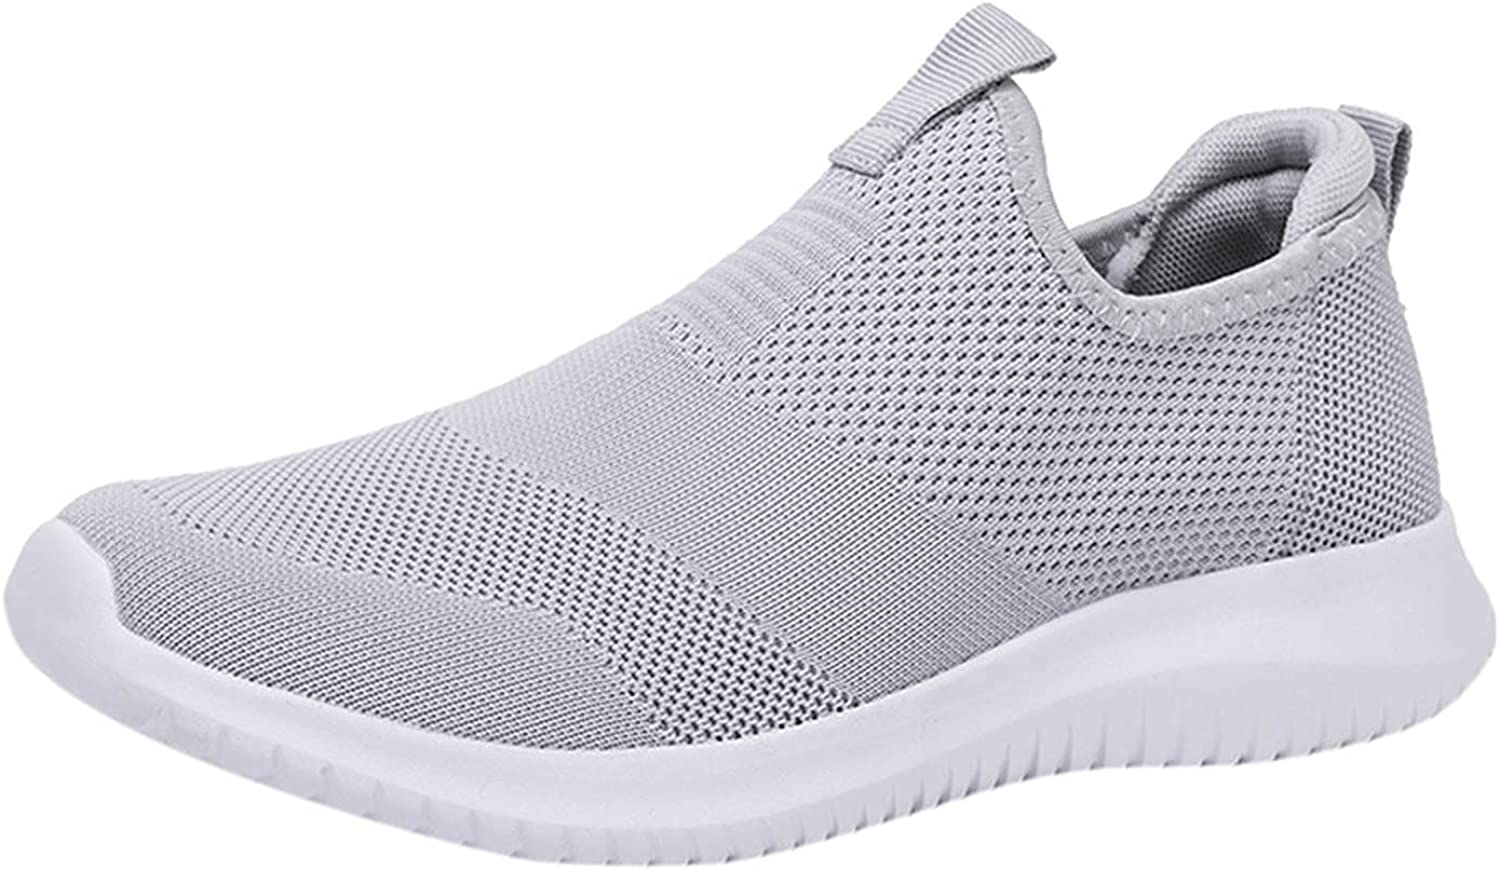 Couple Woven Breathable Casual Shoes Autumn New Comfortable Ultra Light Hollow Sneakers Soft Bottom Mesh No-Slip Platform Running Sports Shoes Slip-Onmens Work Shoes